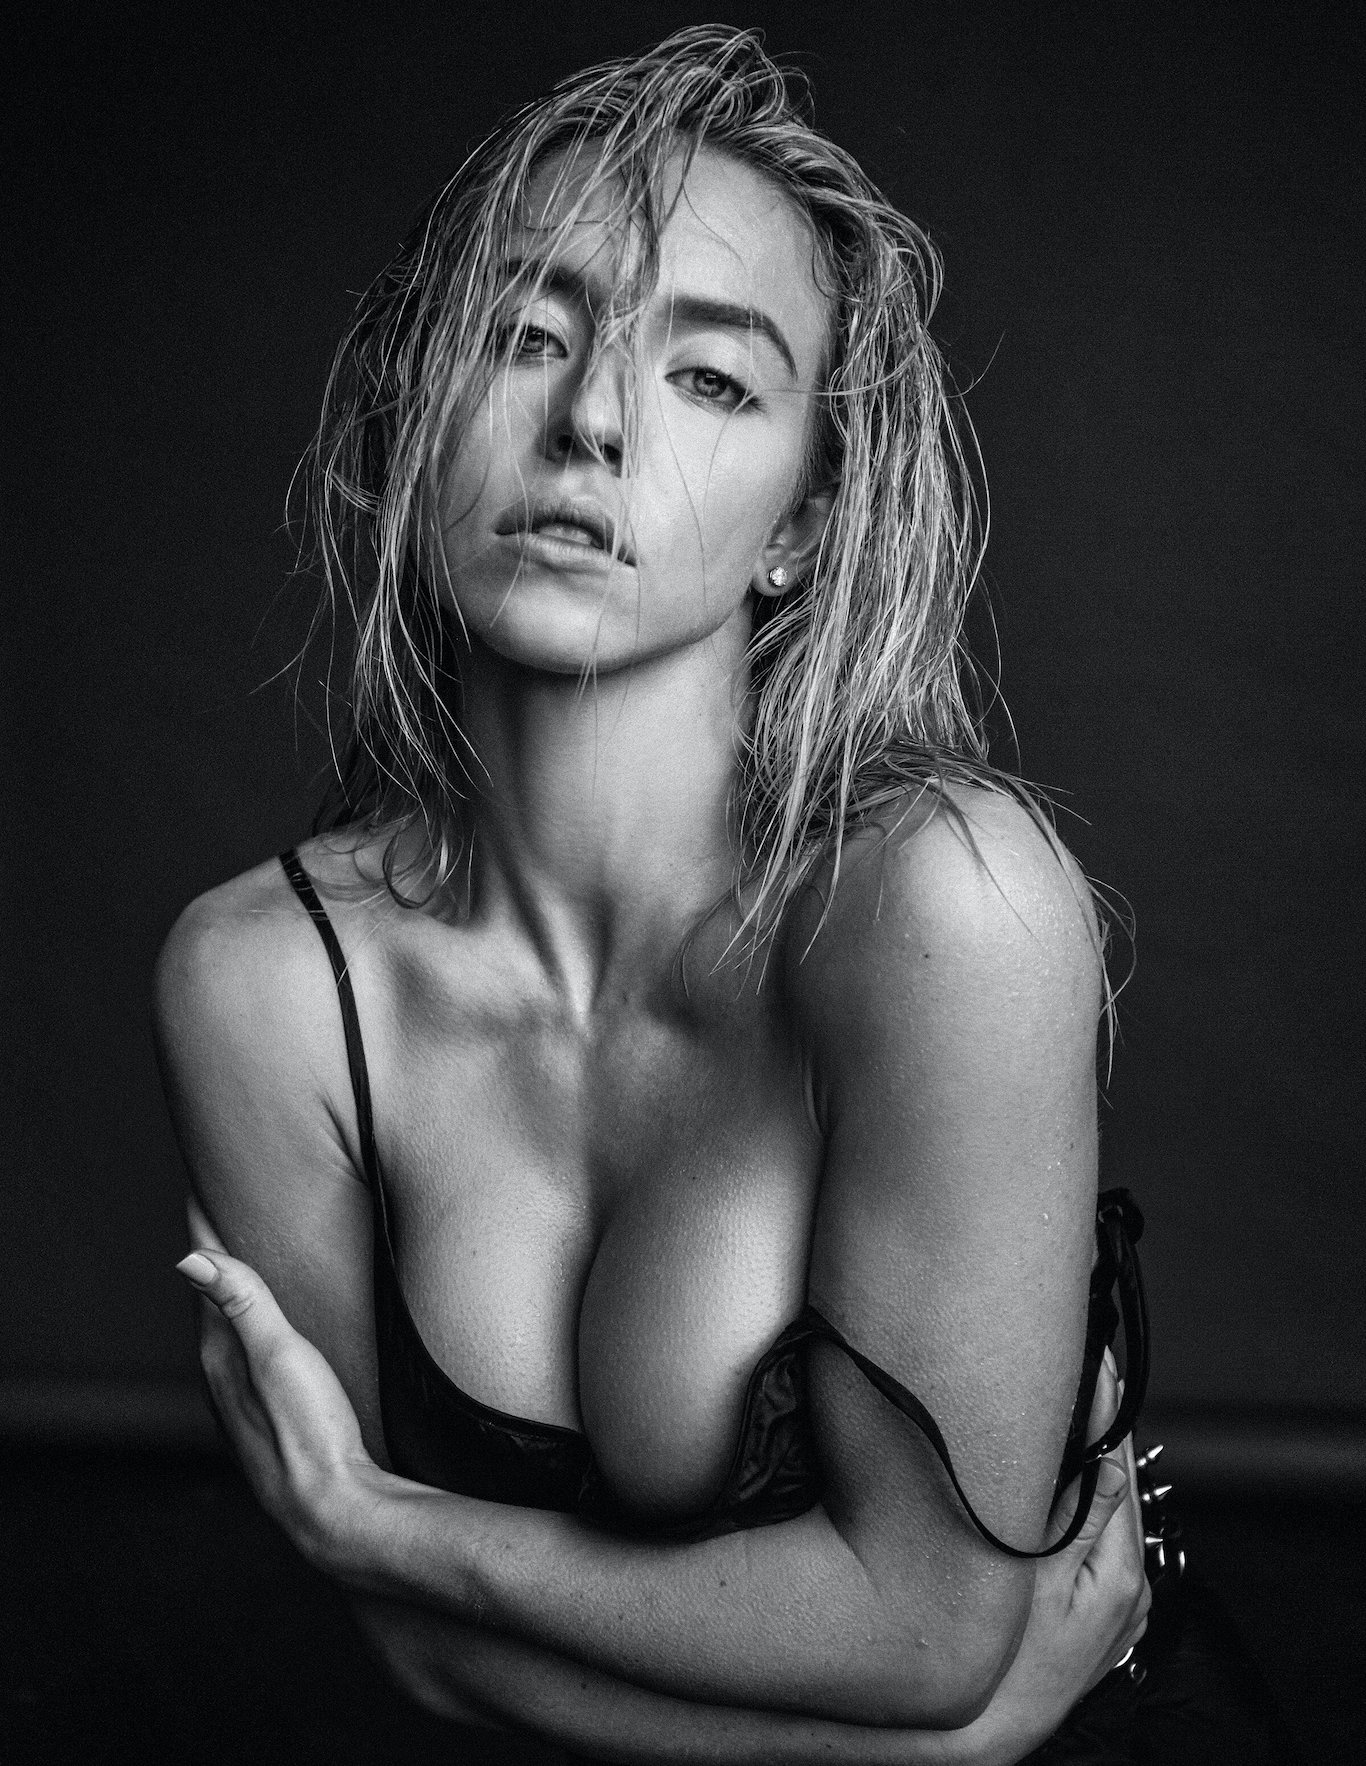 Sydney Sweeney by Damon Baker